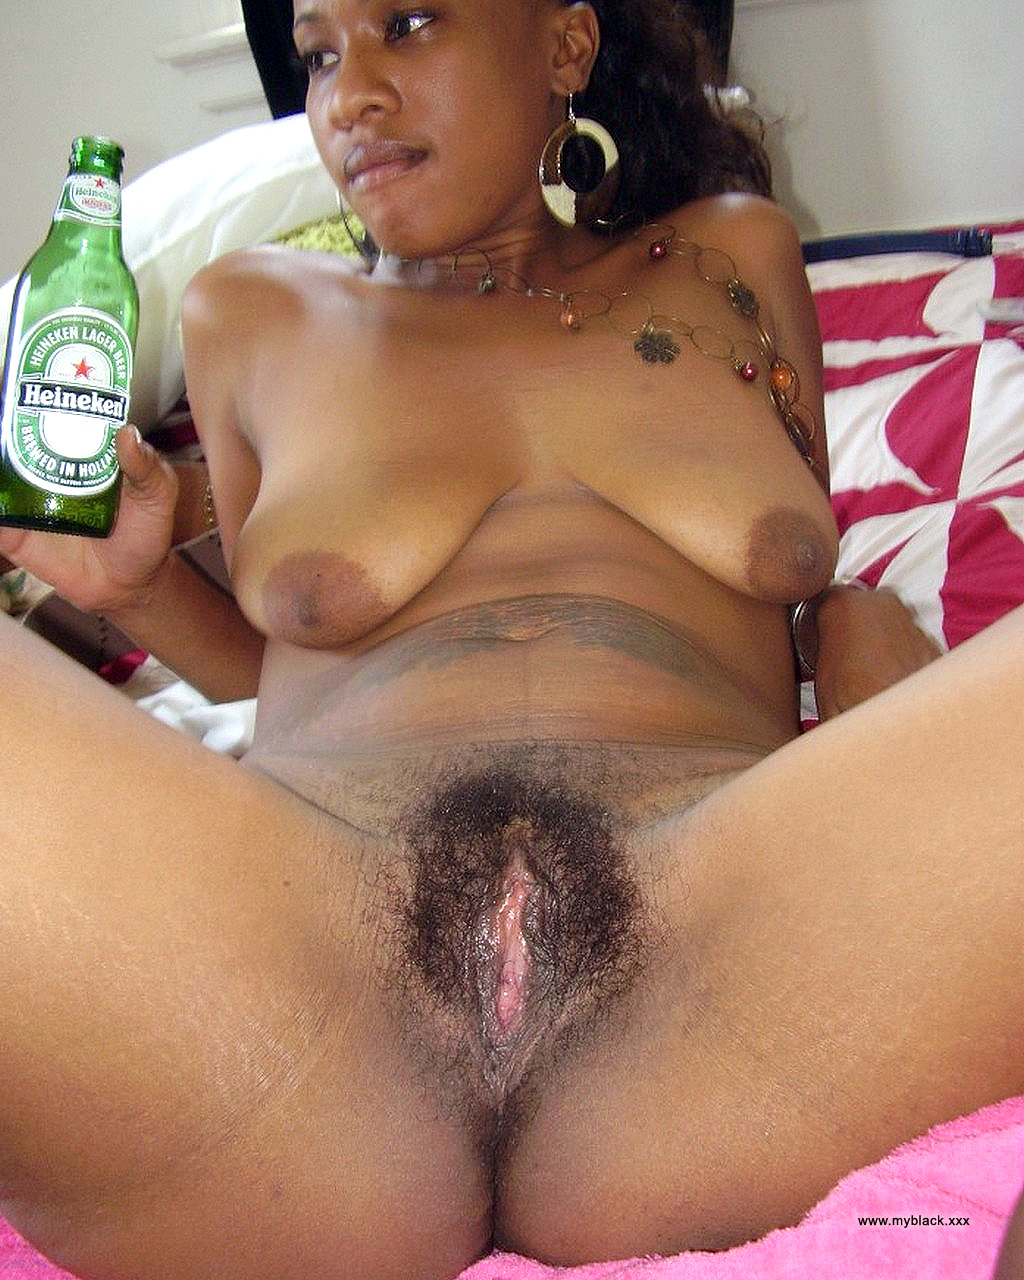 black-african-open-pussy-amature-adult-couples-home-love-movies